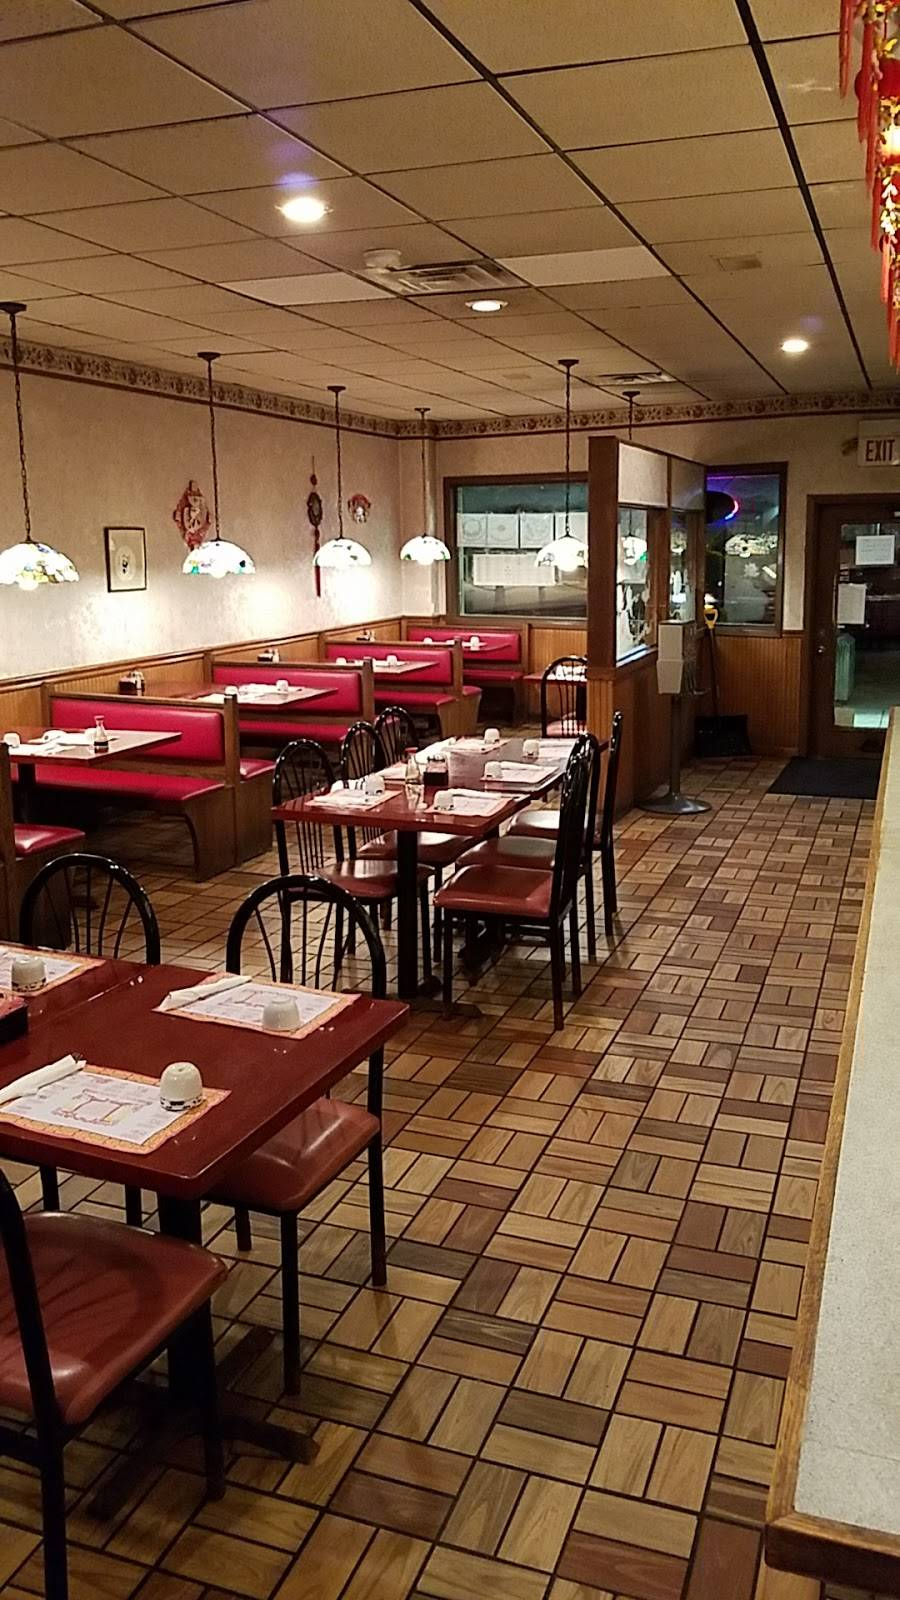 Unique China | restaurant | 419 McKean Ave, Charleroi, PA 15022, USA | 7244899291 OR +1 724-489-9291